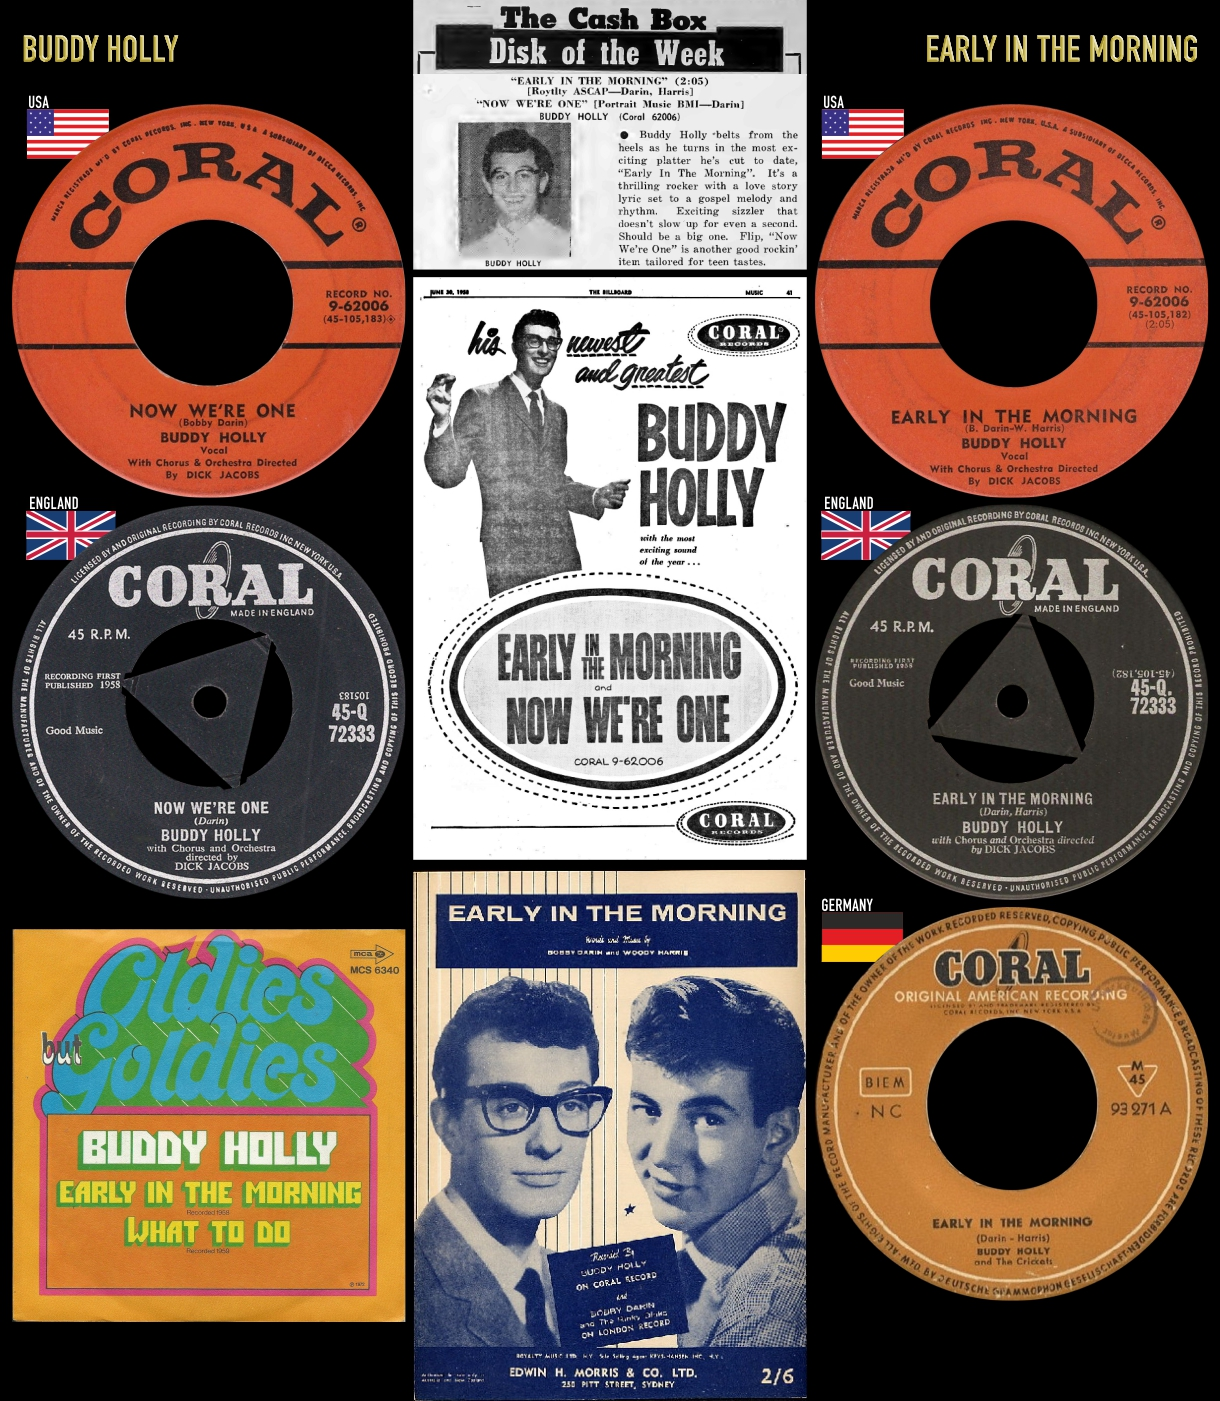 580802_Buddy Holly_Early In The Morning_Now We're One